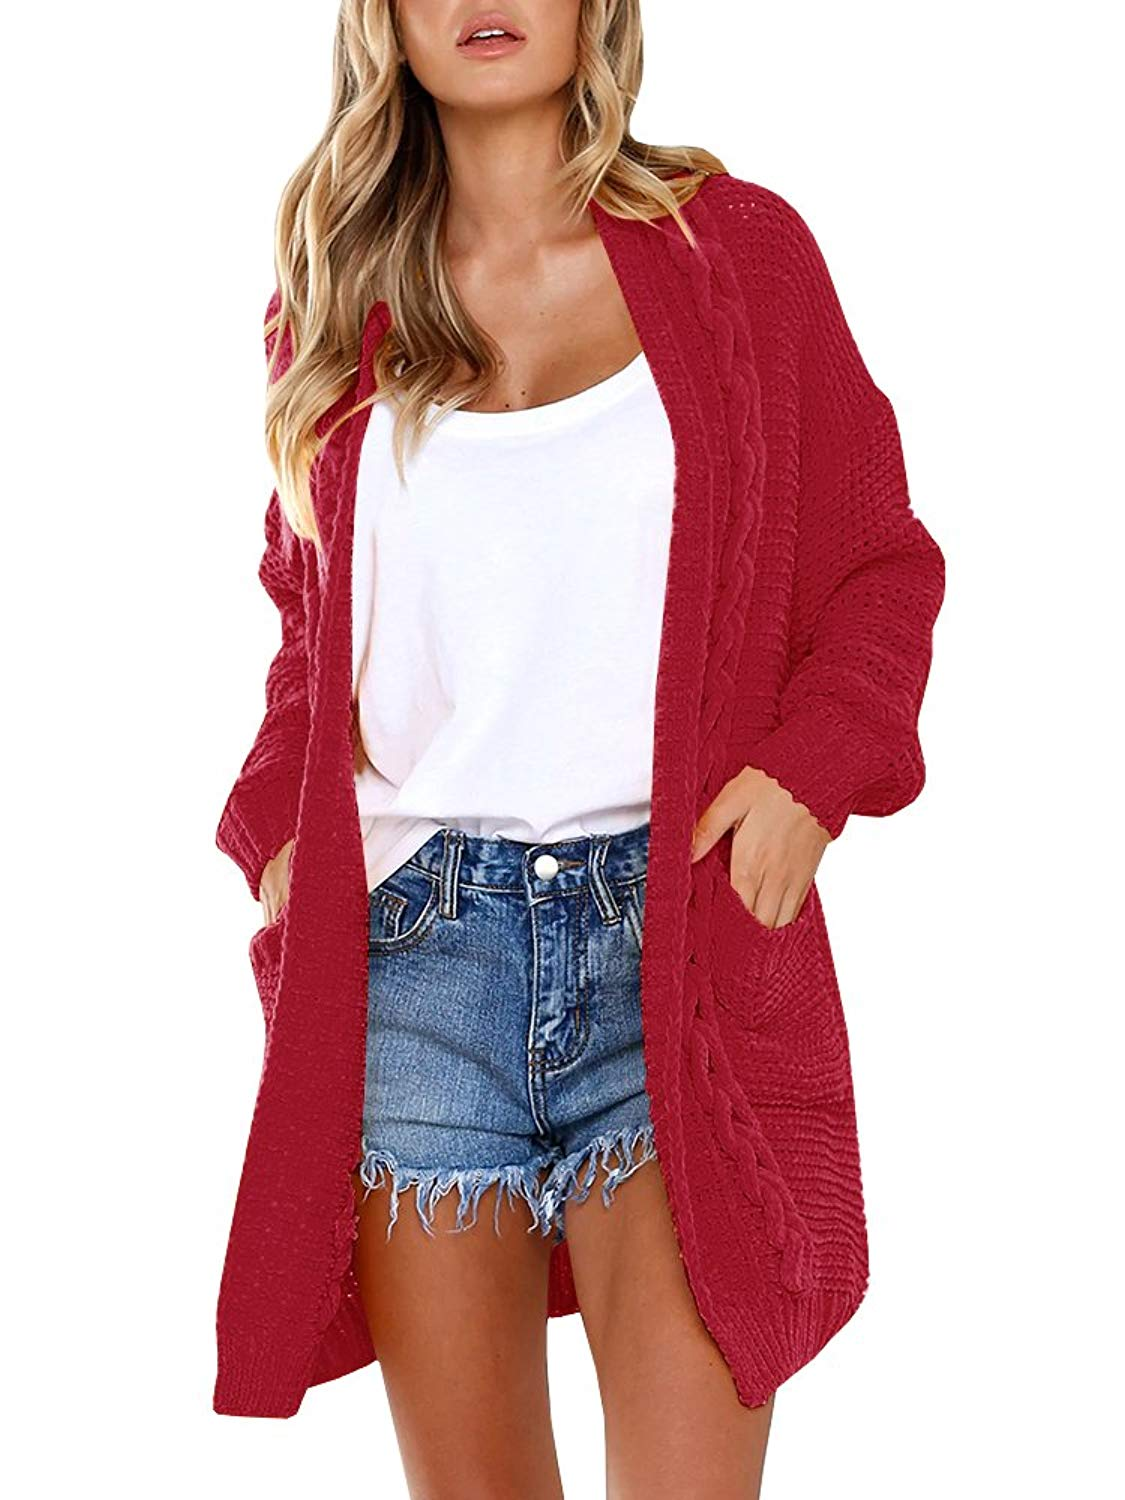 f24e203eec Get Quotations · Imily Bela Womens Bohemian Knitted Ope Front Sweater  Slouchy Pocket Cardigan Outfit